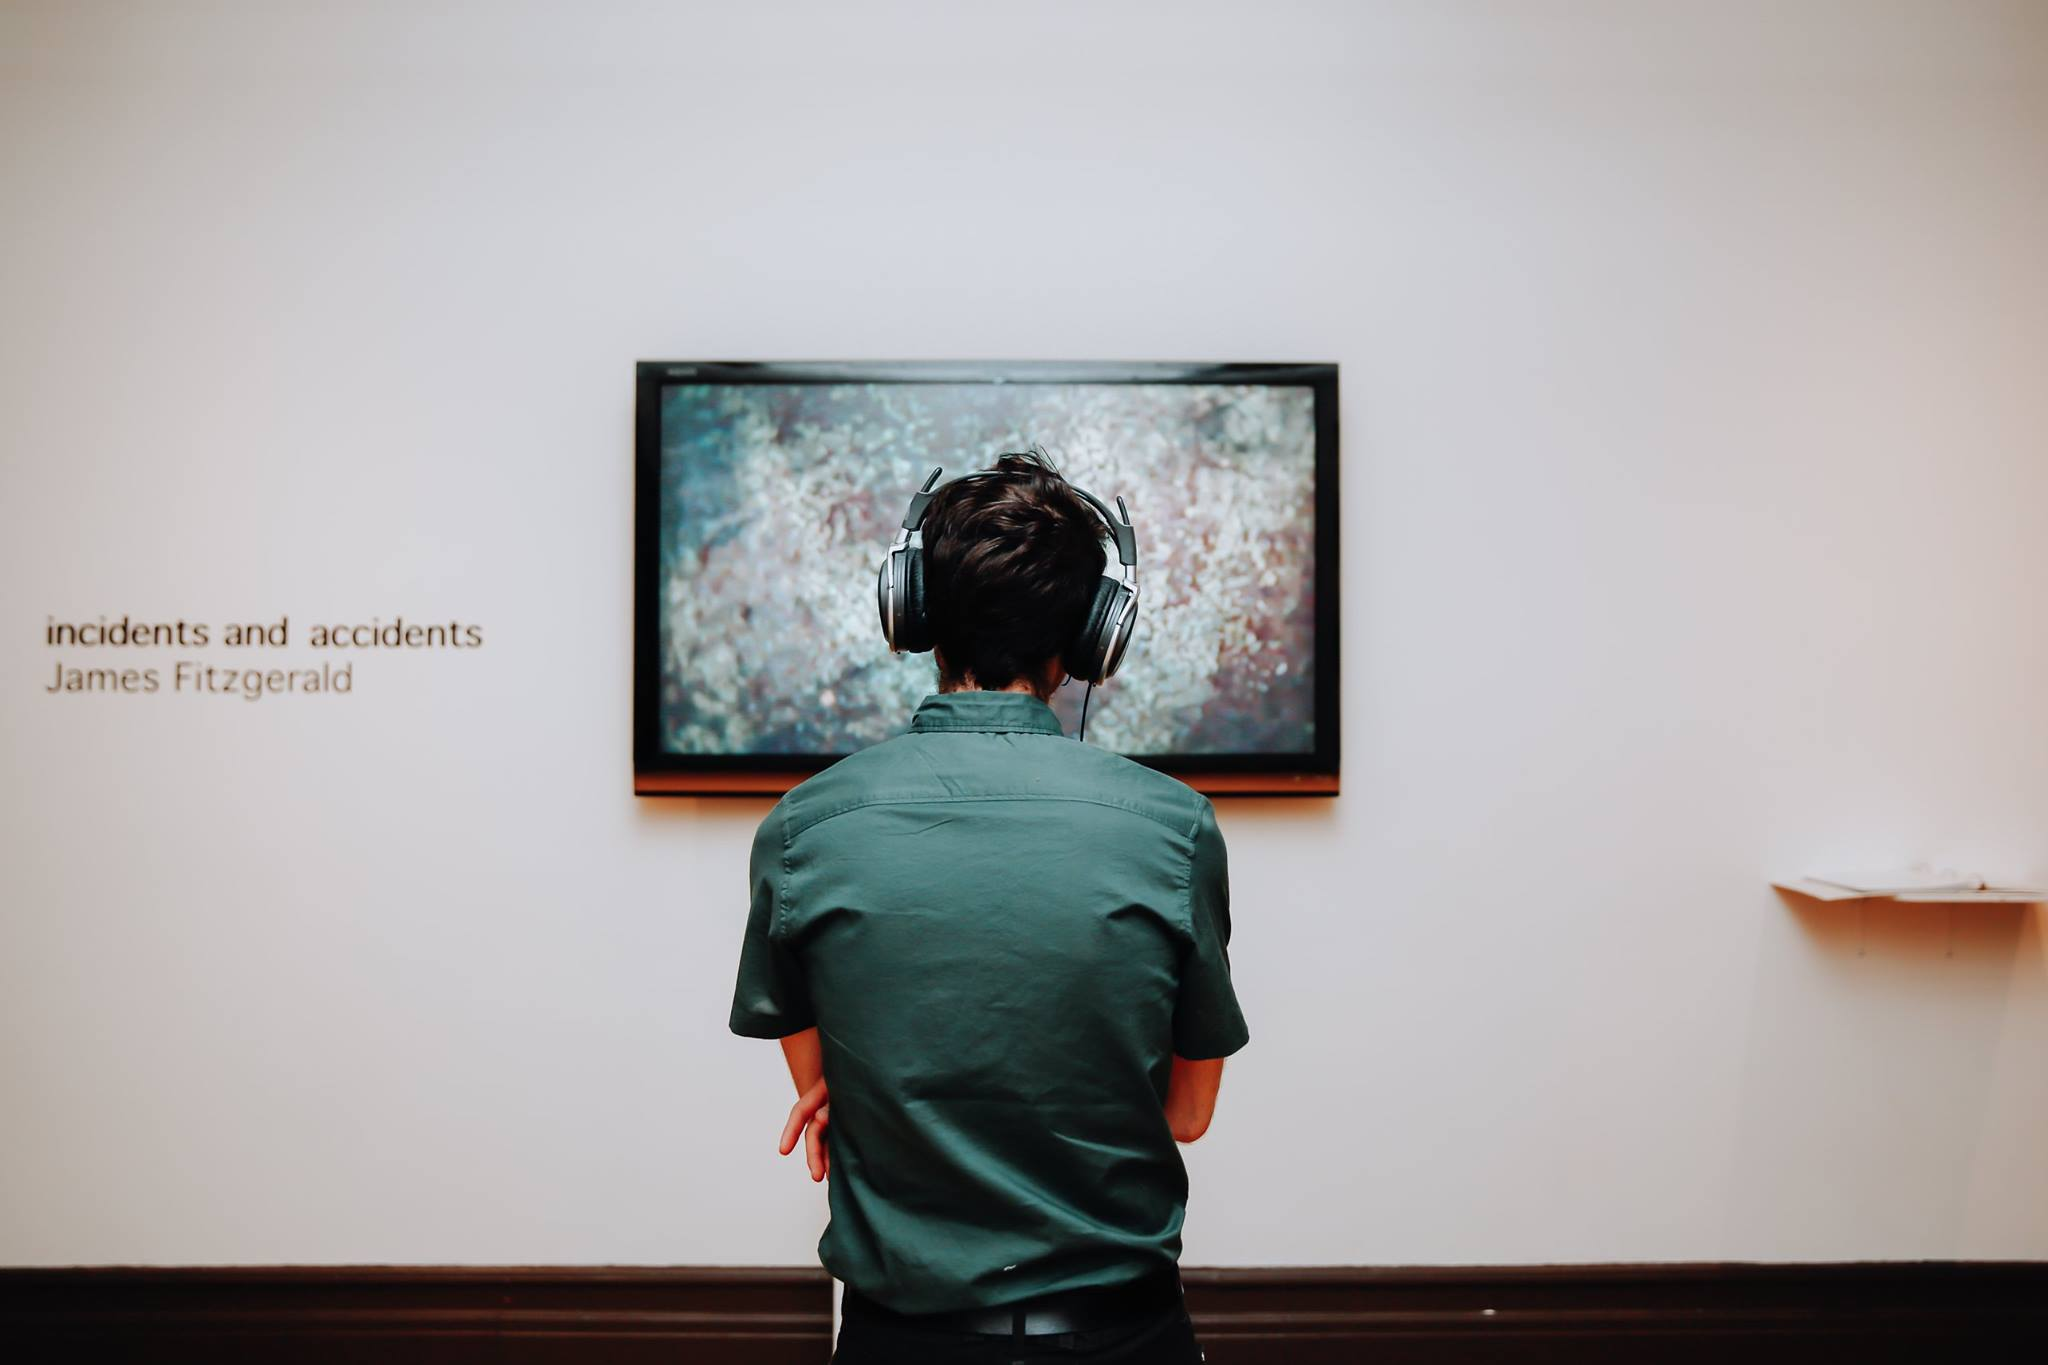 Un visiteur devant l'œuvre  incidents and accidents  de James Fitzgerald - 2017  A visitor in front of James Fitzgerald's  incidents and accidents  - 2017